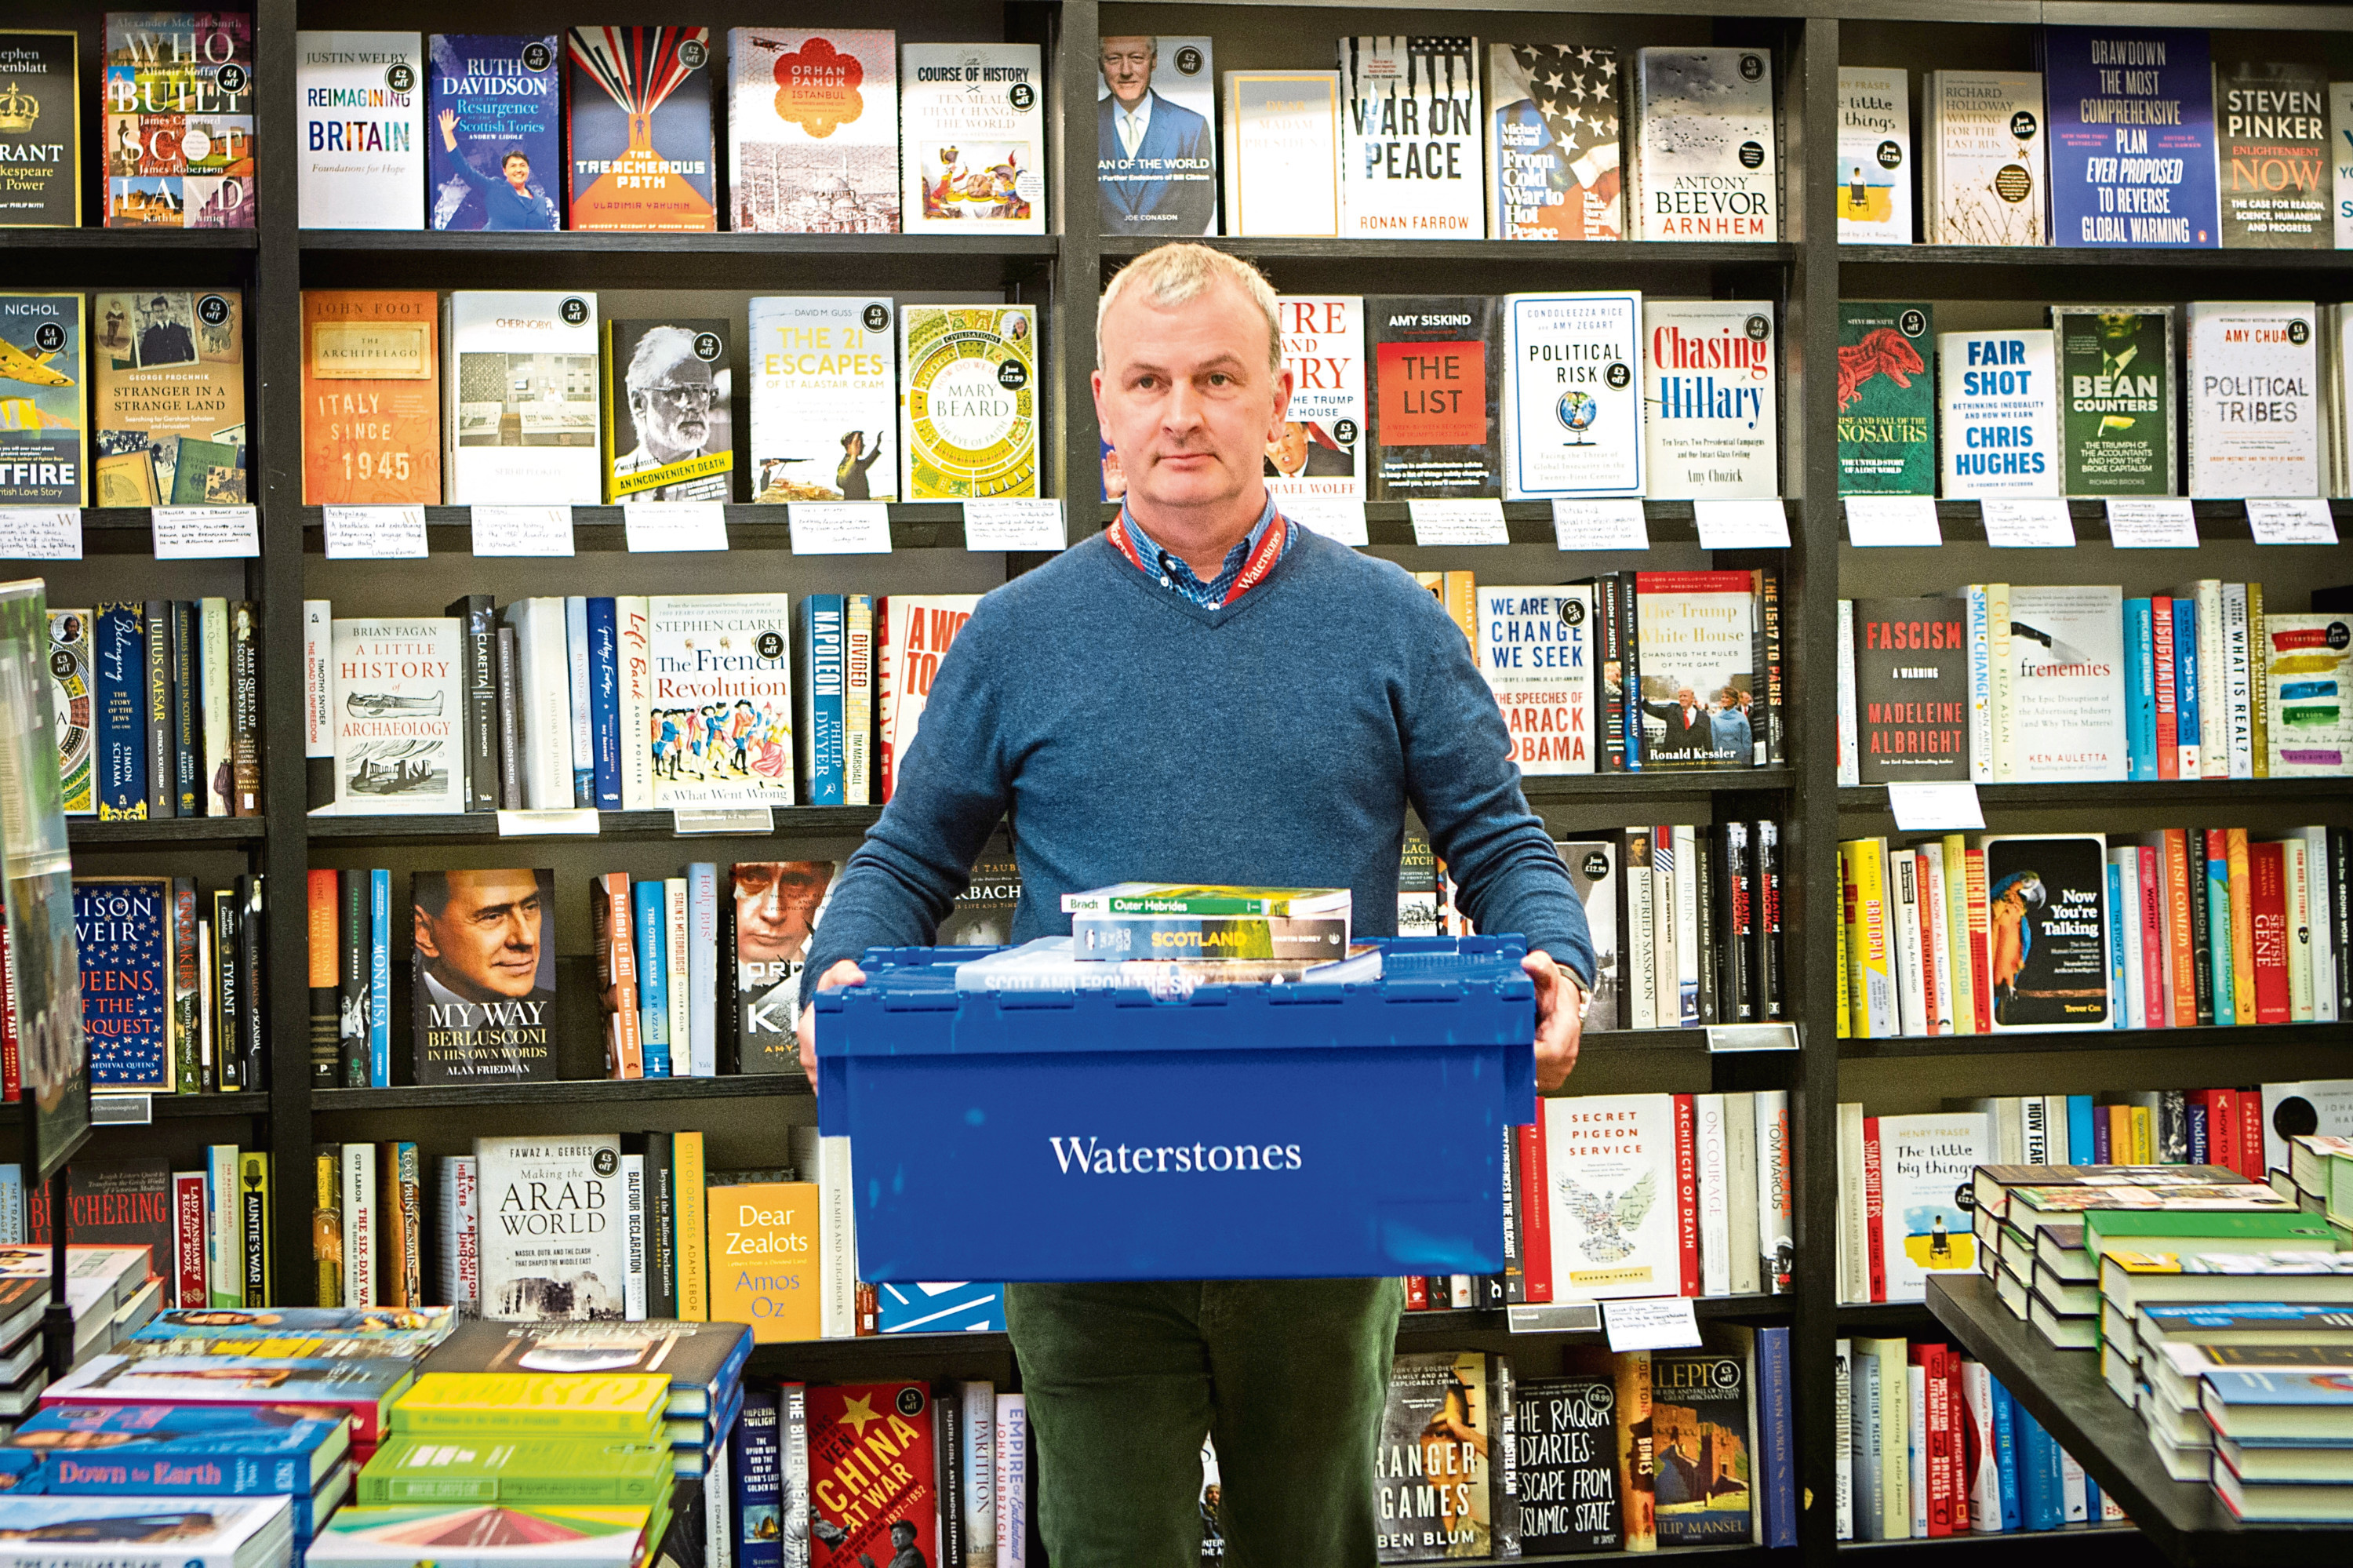 Courier News, Scott Milne Story, CR0001715 Bookshop manager travelling to Outer Hebrides with 'pop-up' bookshop. Picture shows Robin Crawford packing the books for the journey. Waterstones Bookshop, Commercial Street, Dundee. Monday 4th June 2018.